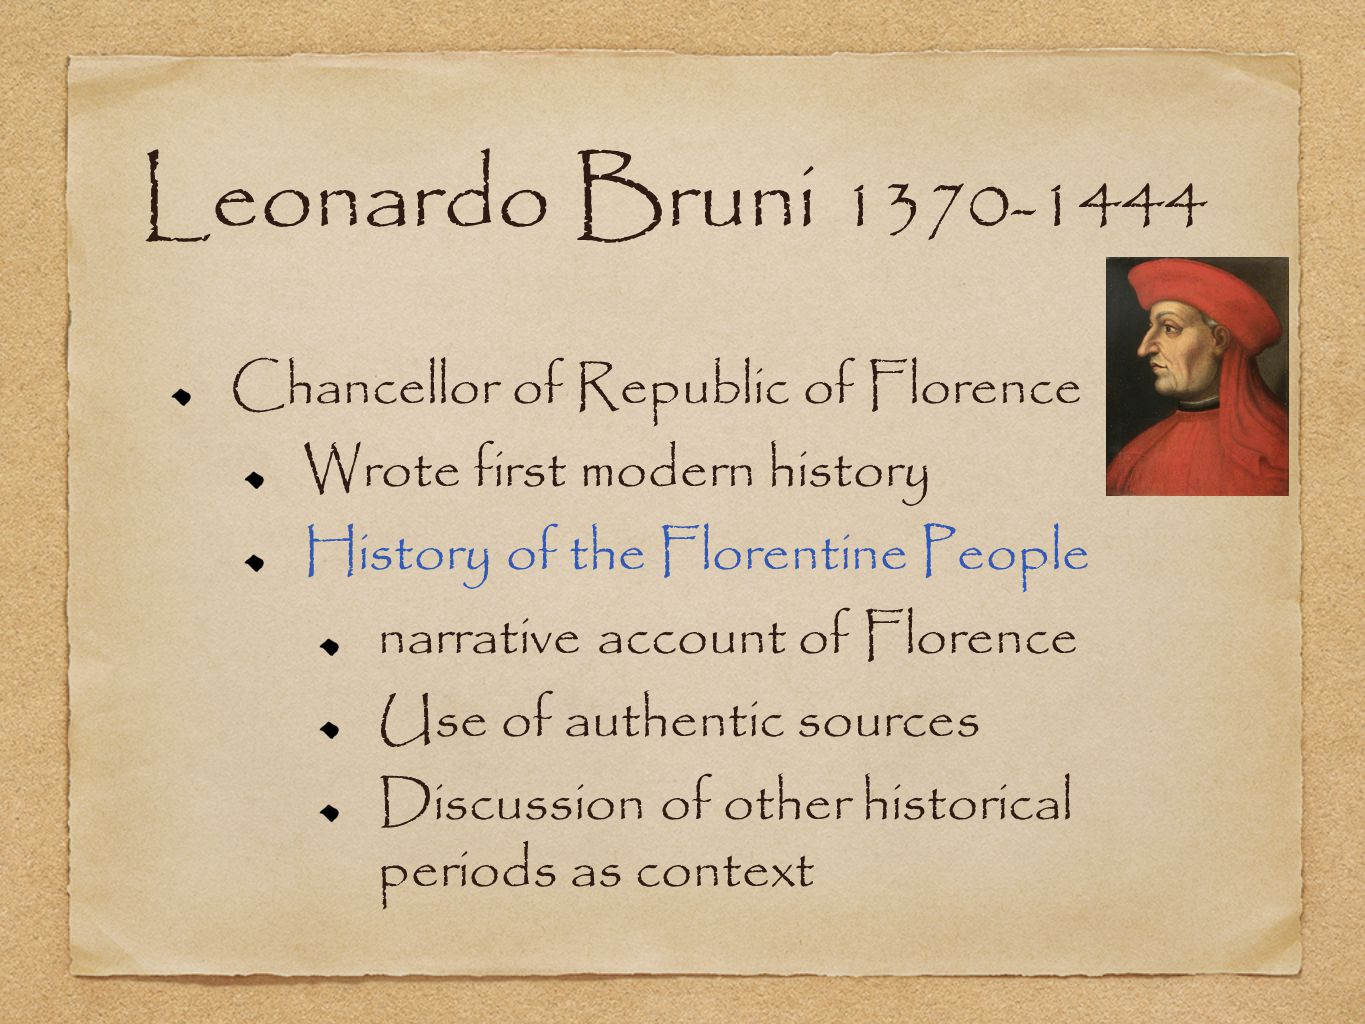 Leonardo Bruni 1370-1444 Chancellor of Republic of Florence Wrote first modern history History of the Florentine People narrative account of Florence Use of authentic sources Discussion of other historical periods as context